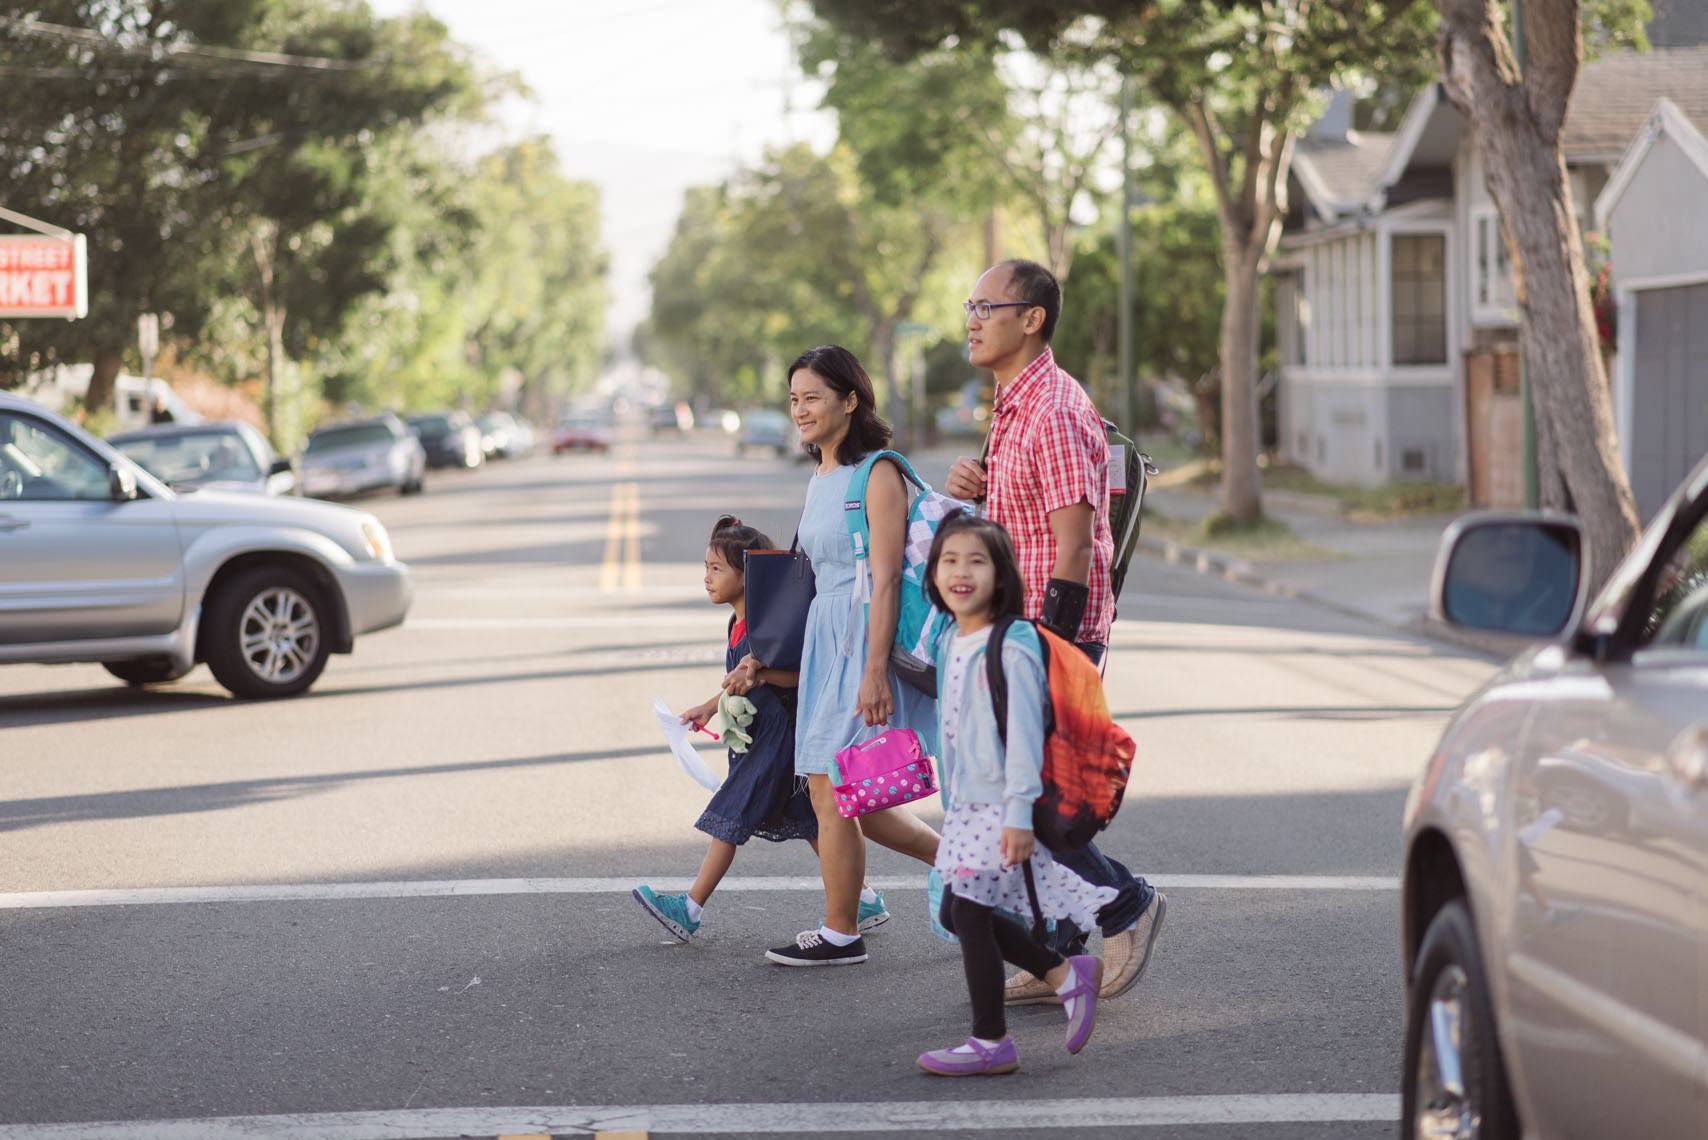 20150831-081011-Family-FirstDayofSchool-MauriceRamirezPhoto